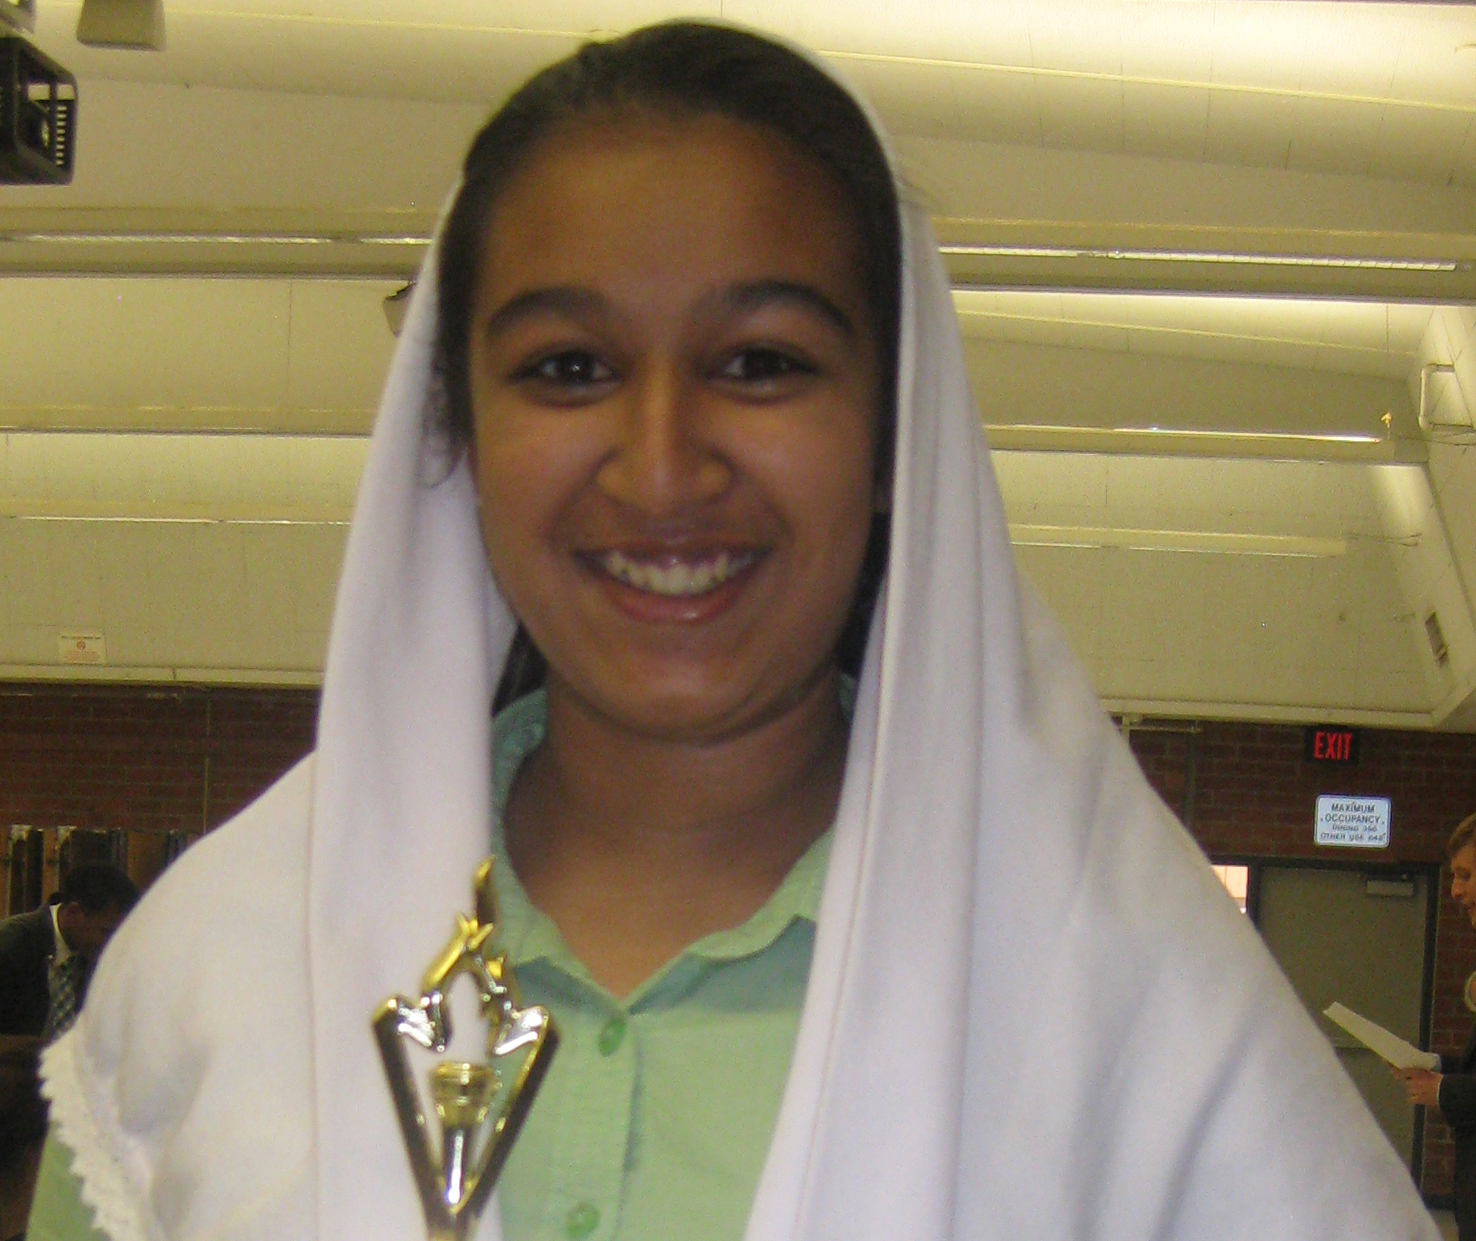 Zainab Rangwala is another member of the team's successful Student Congress squad. Look for her to be bringing home more trophies as the month's unfold!